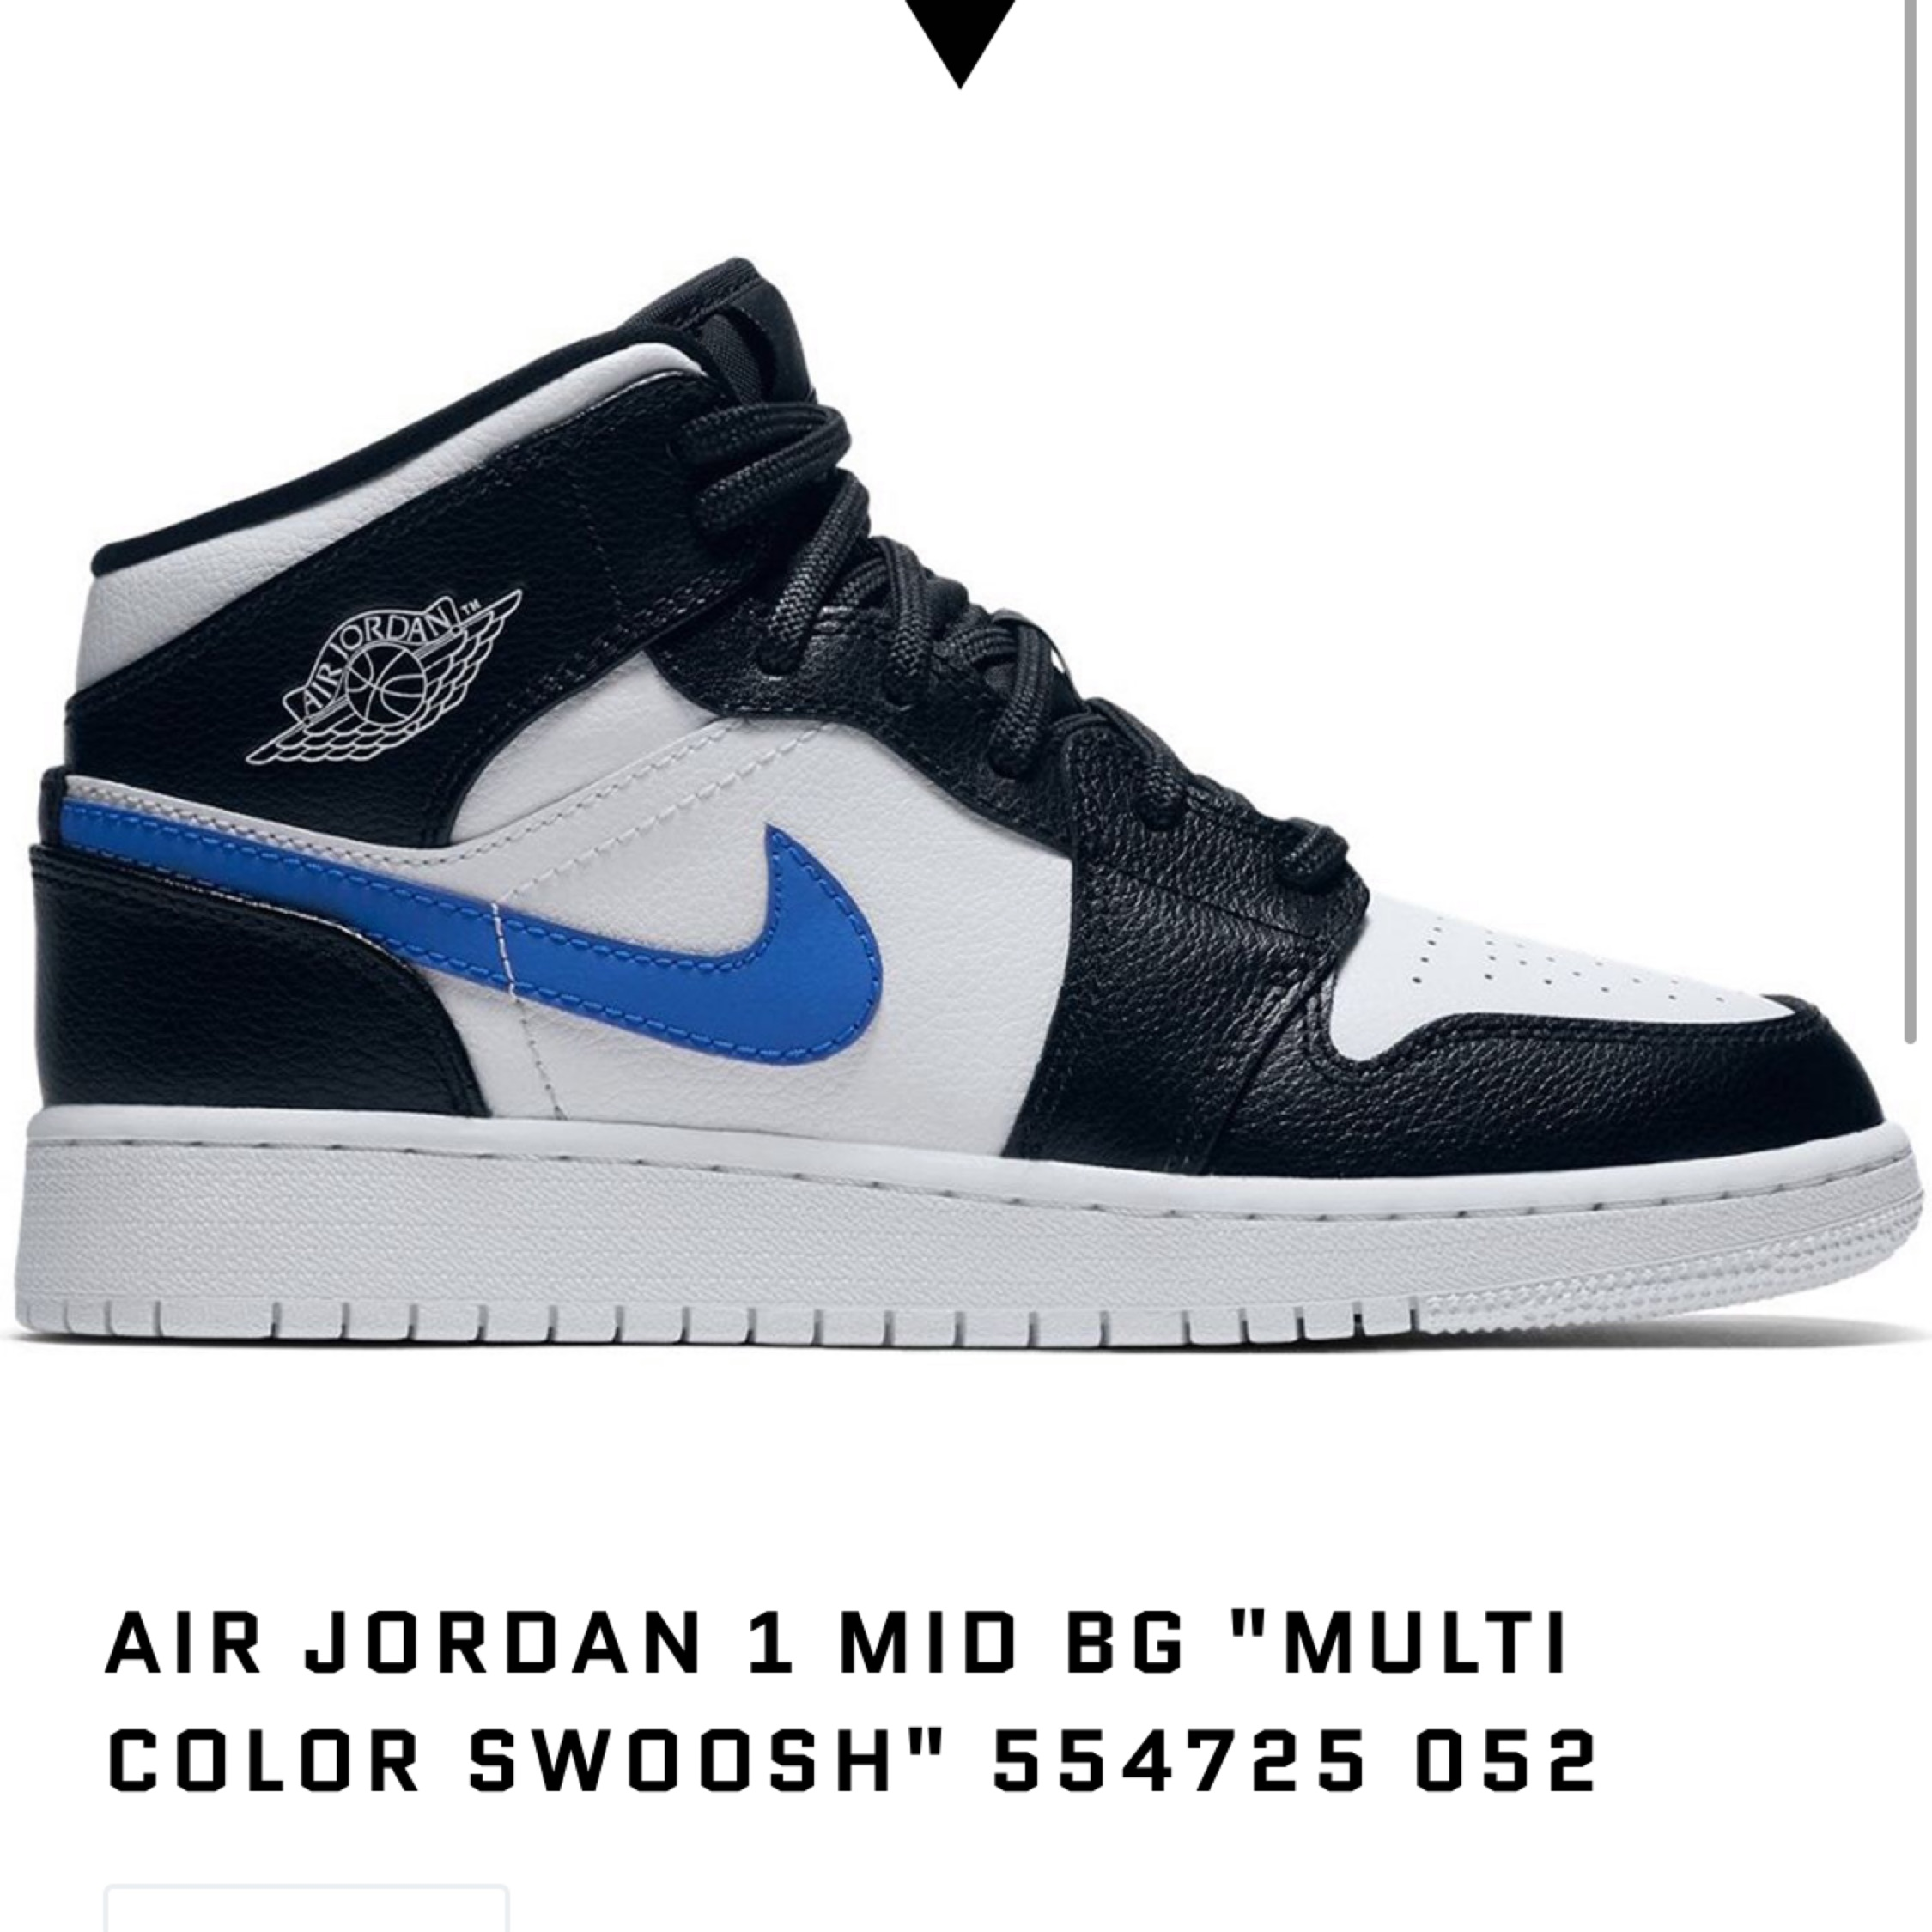 new images of buying new shop best sellers Nike Air Jordan 1 Mid Bg Colour Swoosh Y5.5